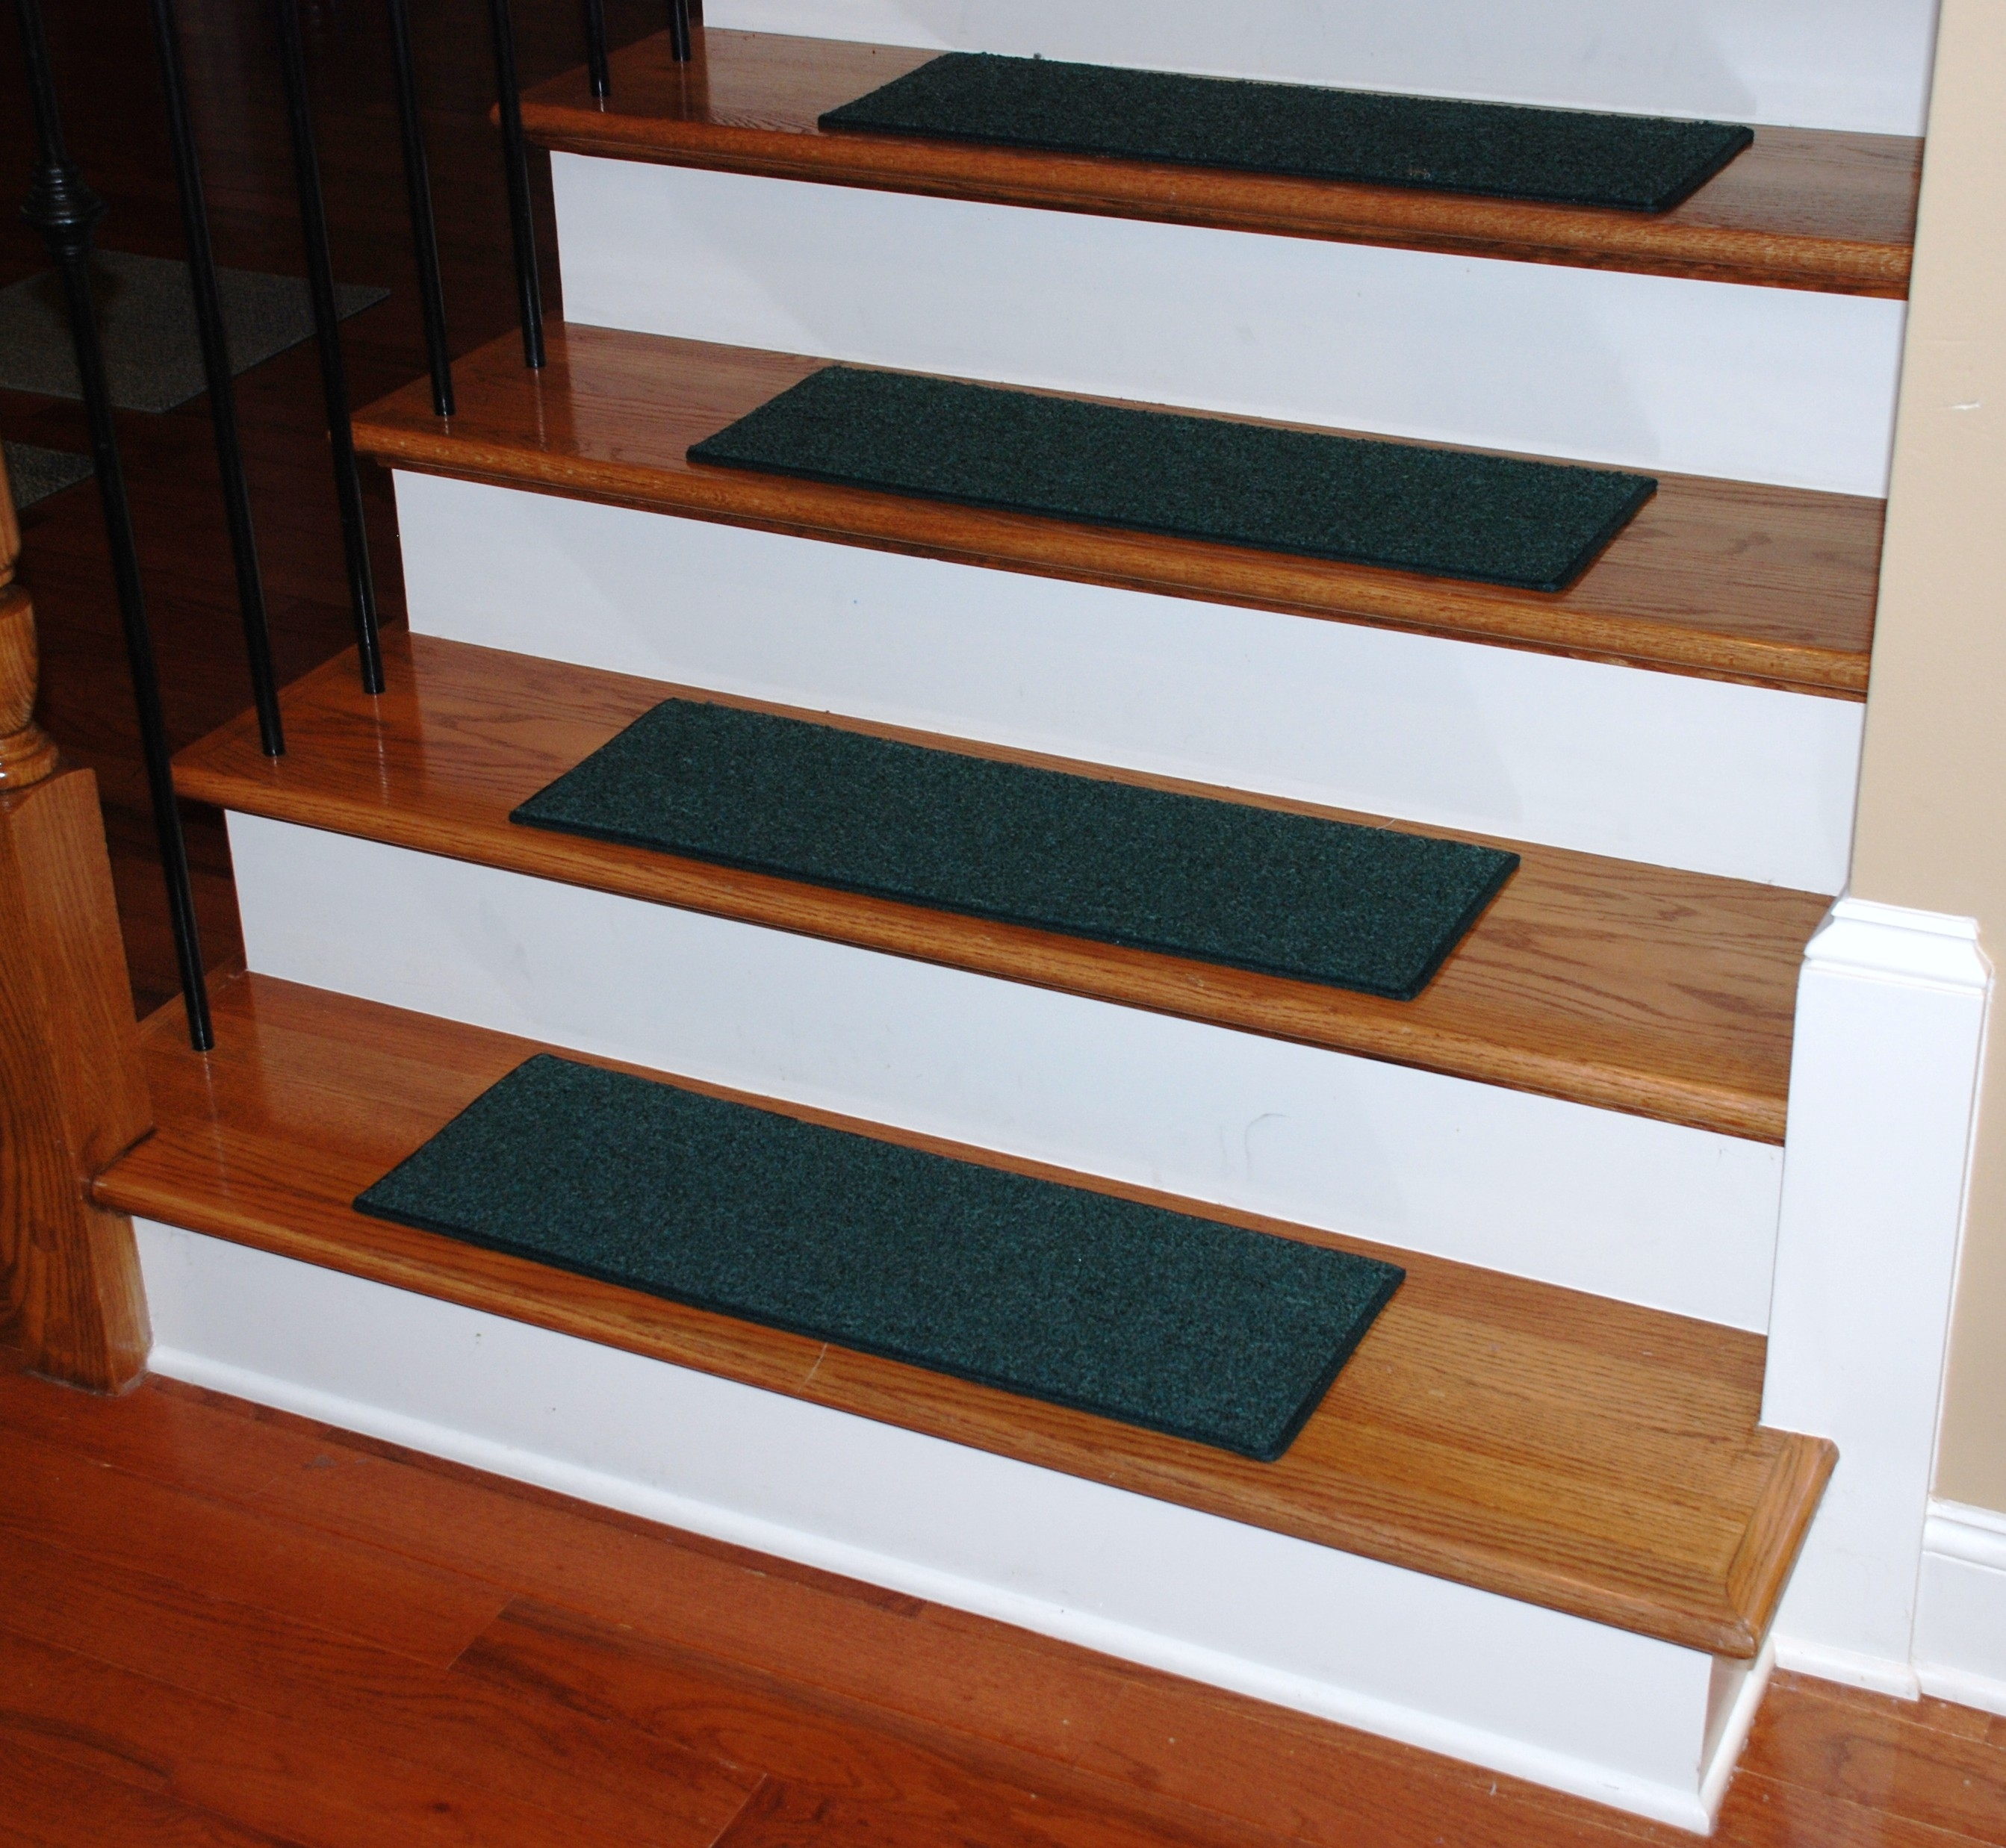 Compact Stair Tread Rugs Contemporary 30 Stair Tread Rugs Pertaining To Small Stair Tread Rugs (View 6 of 15)